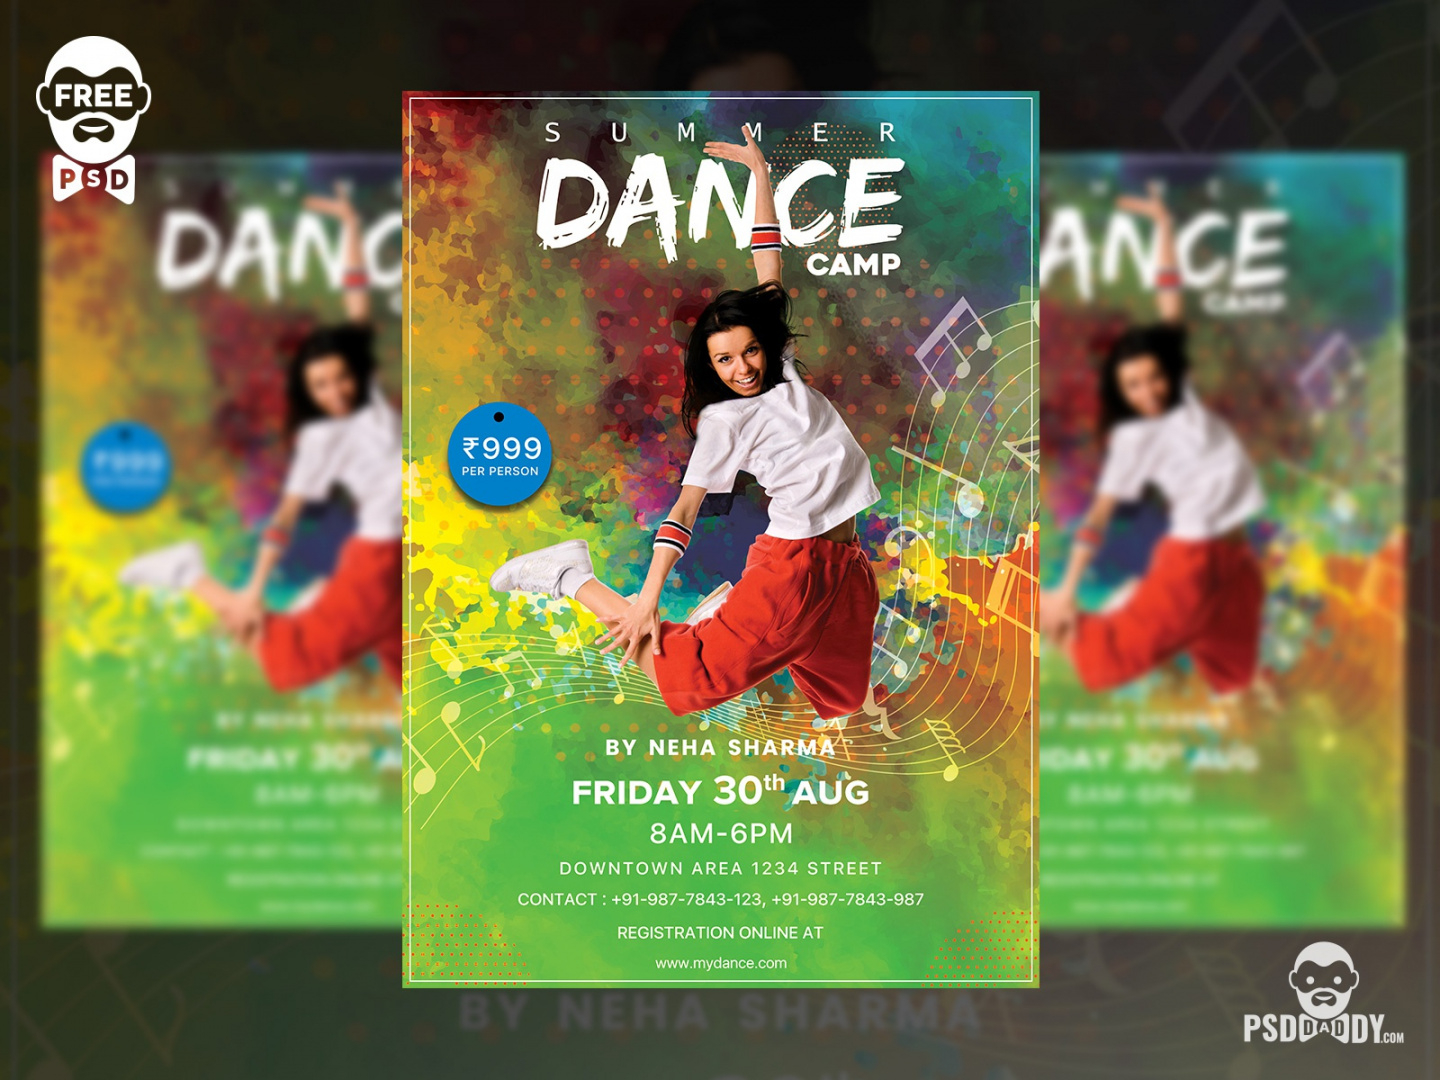 dance camp flyer free psd template by pixelsquad on dribbble dance camp flyer template and sample